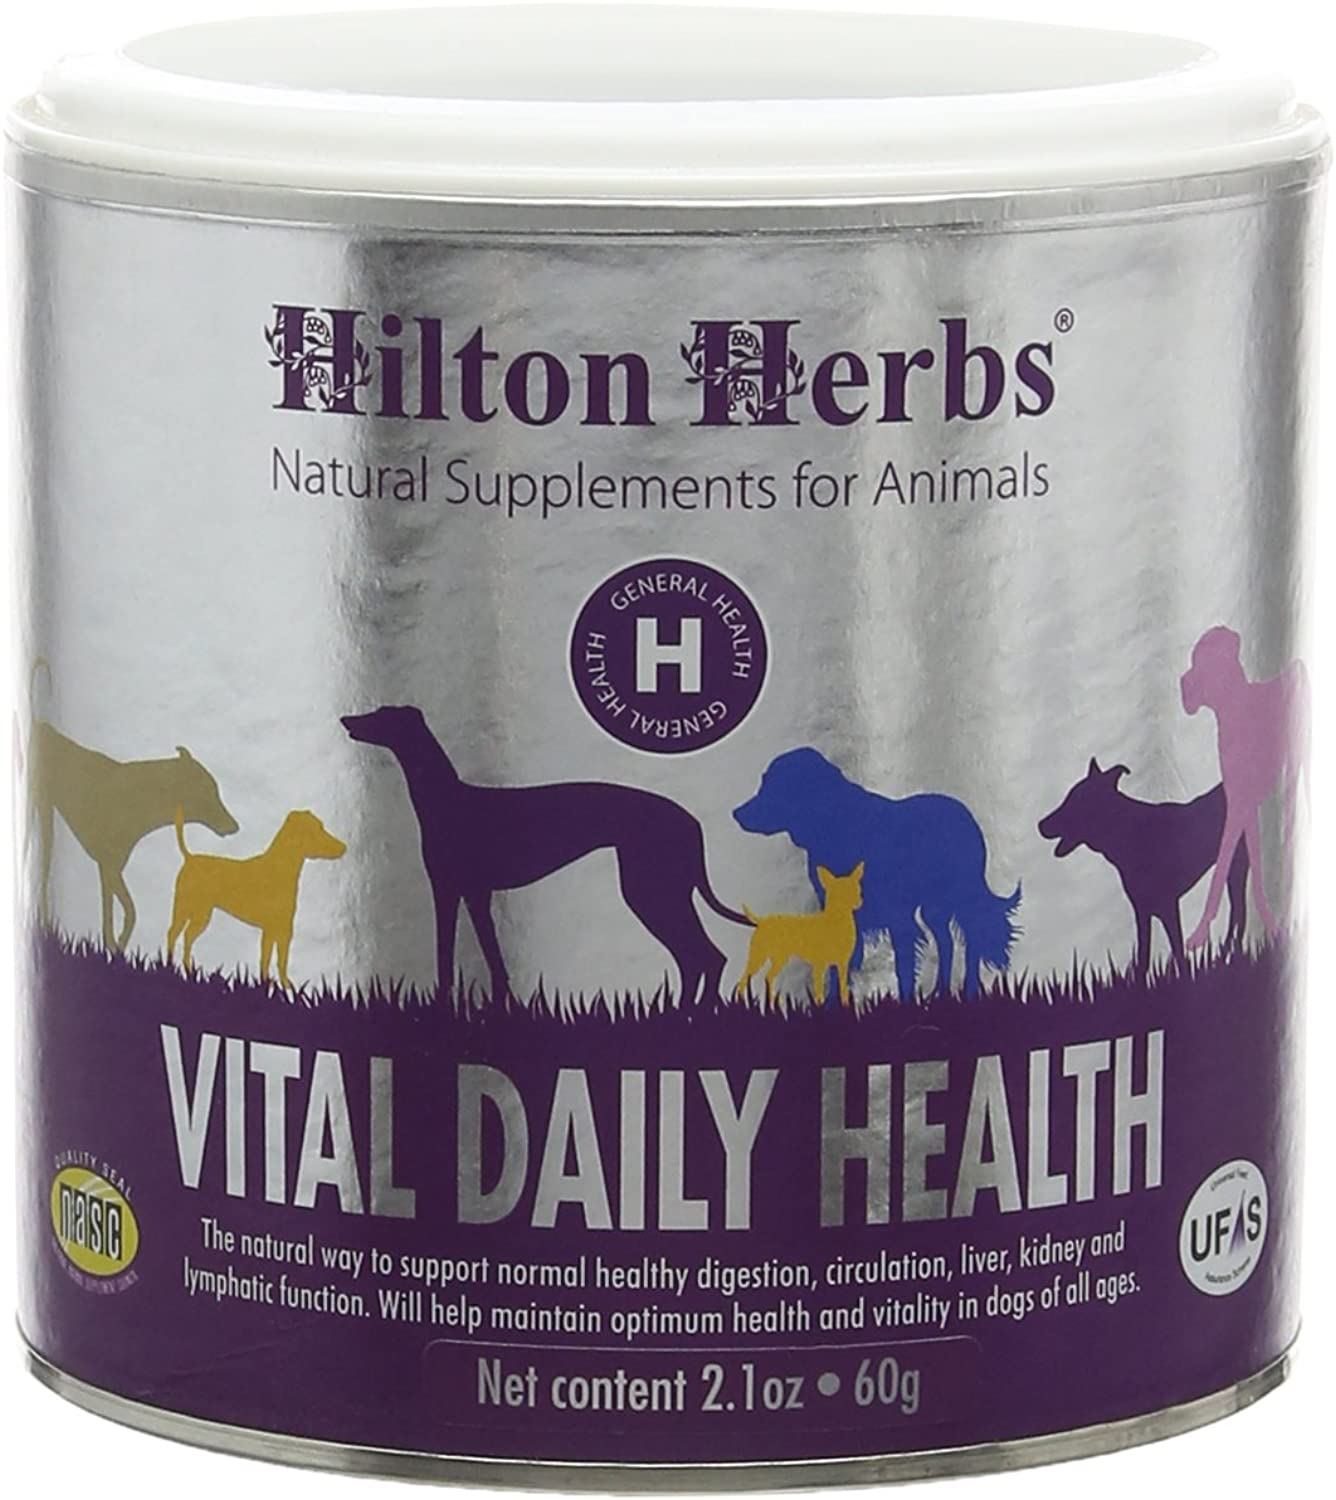 Hilton Herbs Canine Vital Daily Health Supplement for Dogs, 2.1 oz Tub